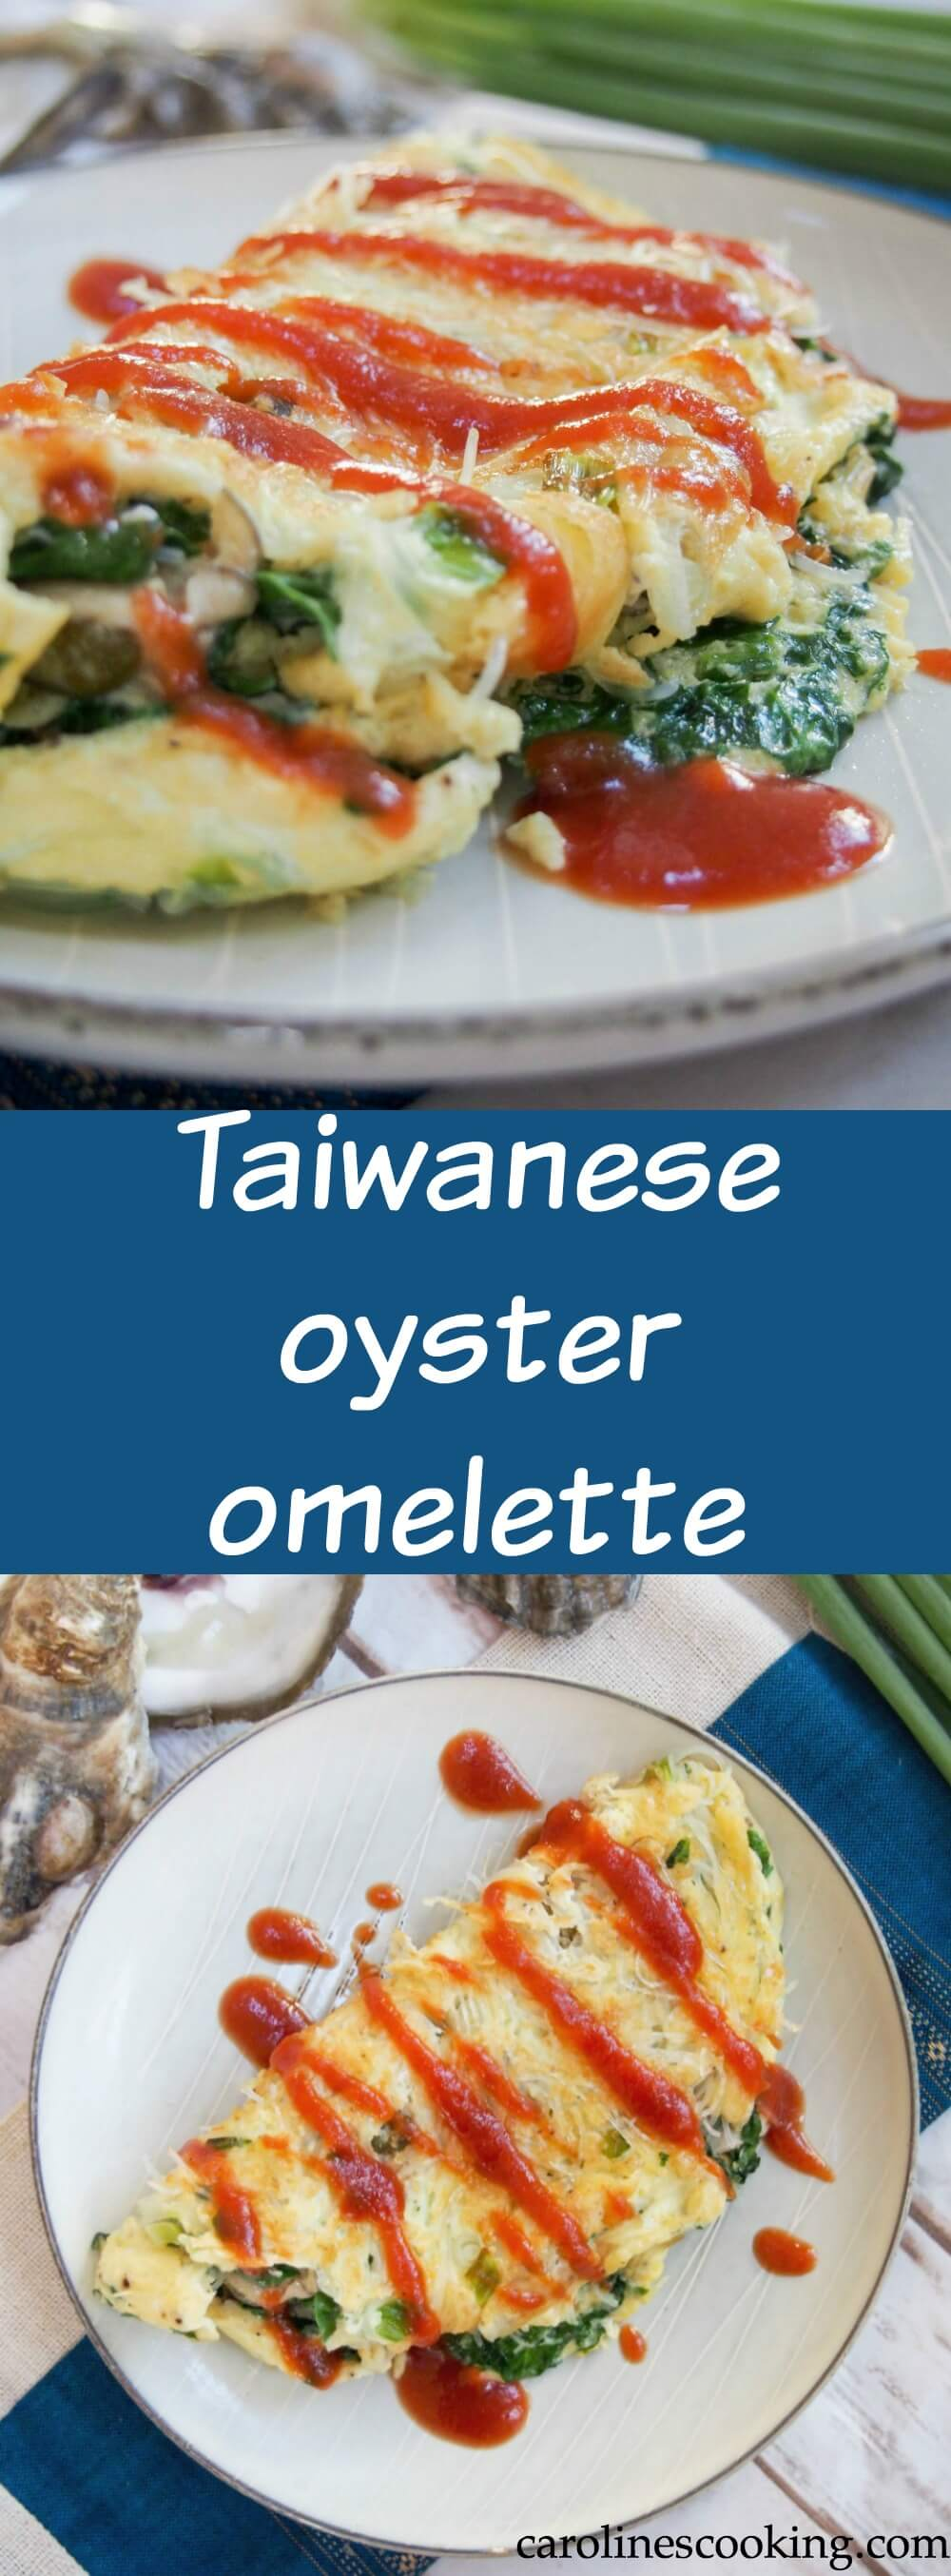 Taiwanese oyster omelette is a classic street food, but it also makes a delicious brunch/lunch - easy to make and with lots of great flavor, with oysters, greens and a flavorful sauce. #omelette #oysters #taiwanesefood